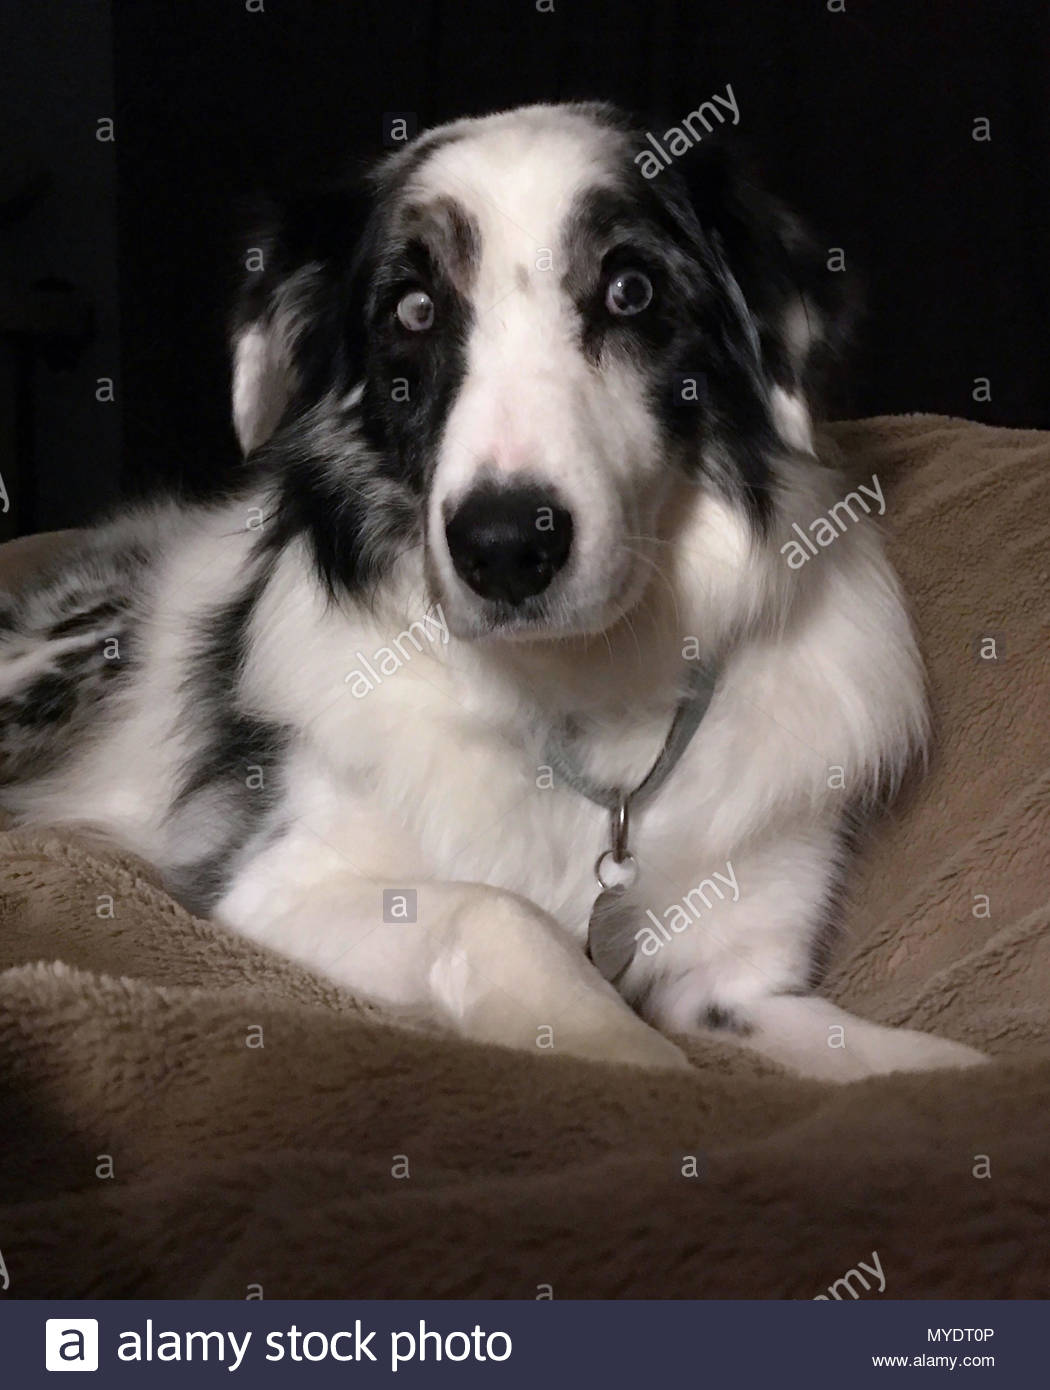 A double blue merle Australian Shepherd lies on a beige blanket and looks at the camera. Stock Photo